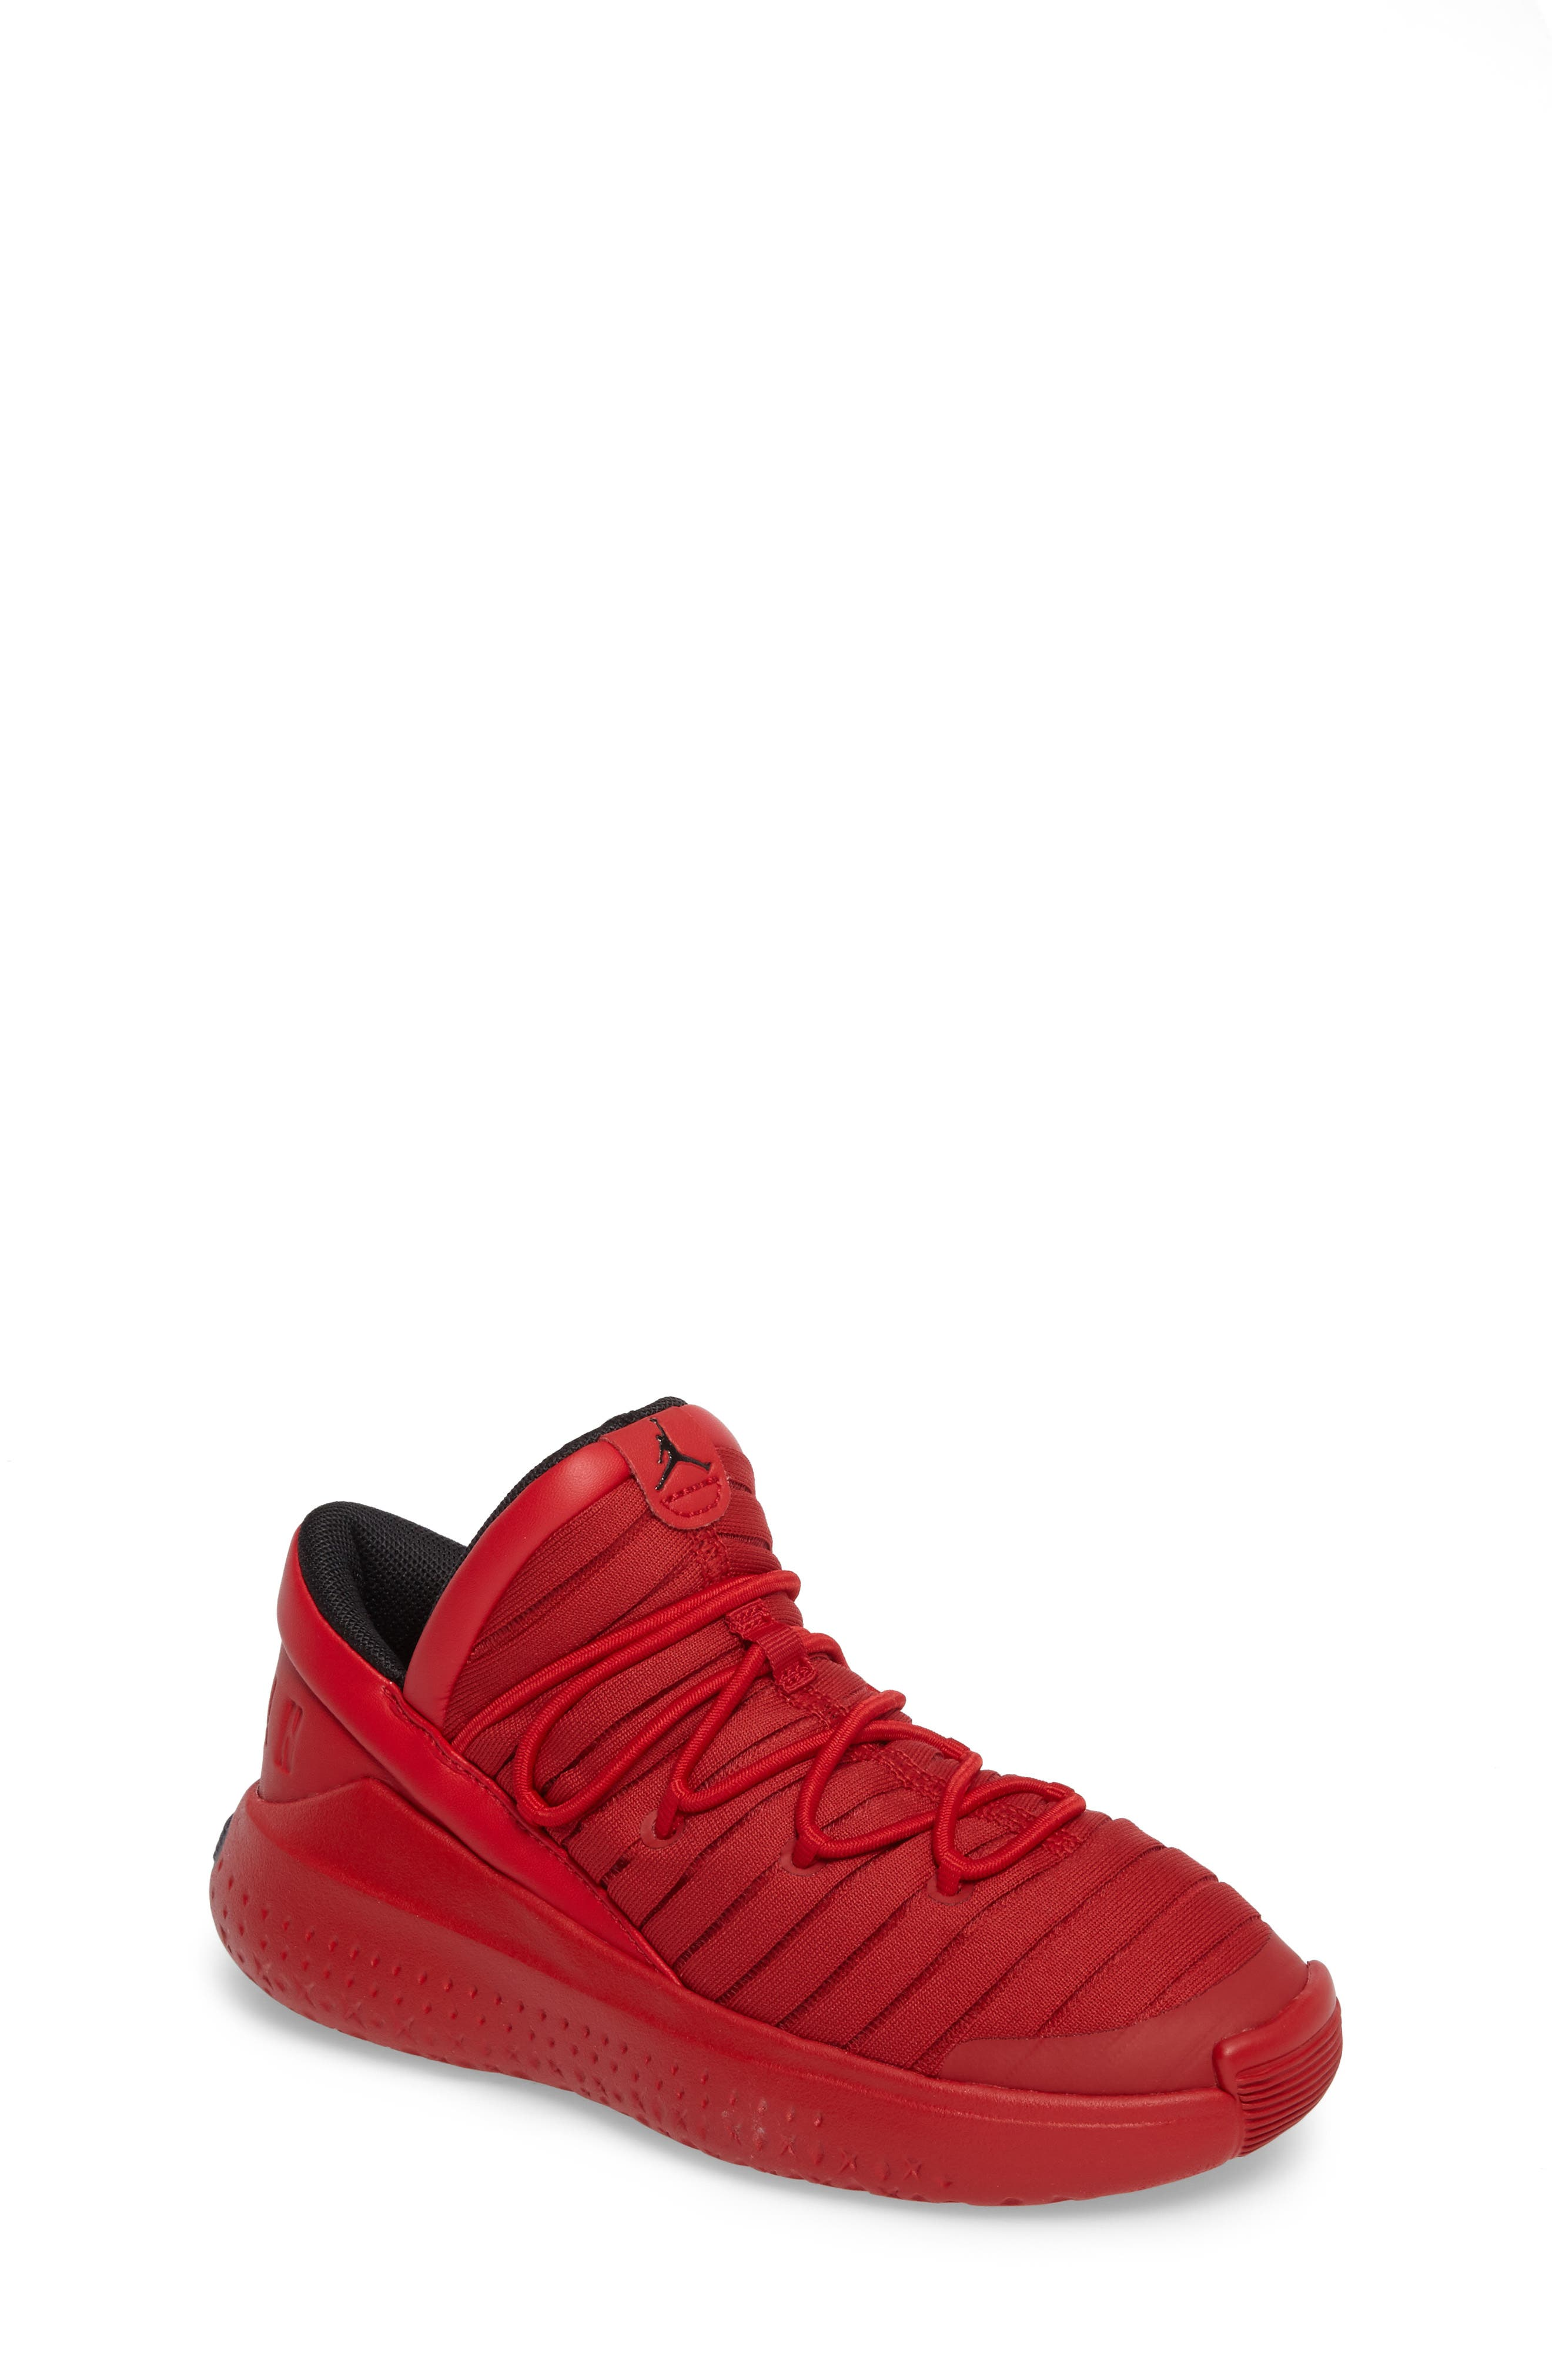 Flight Luxe Sneaker,                         Main,                         color, Gym Red/ Black